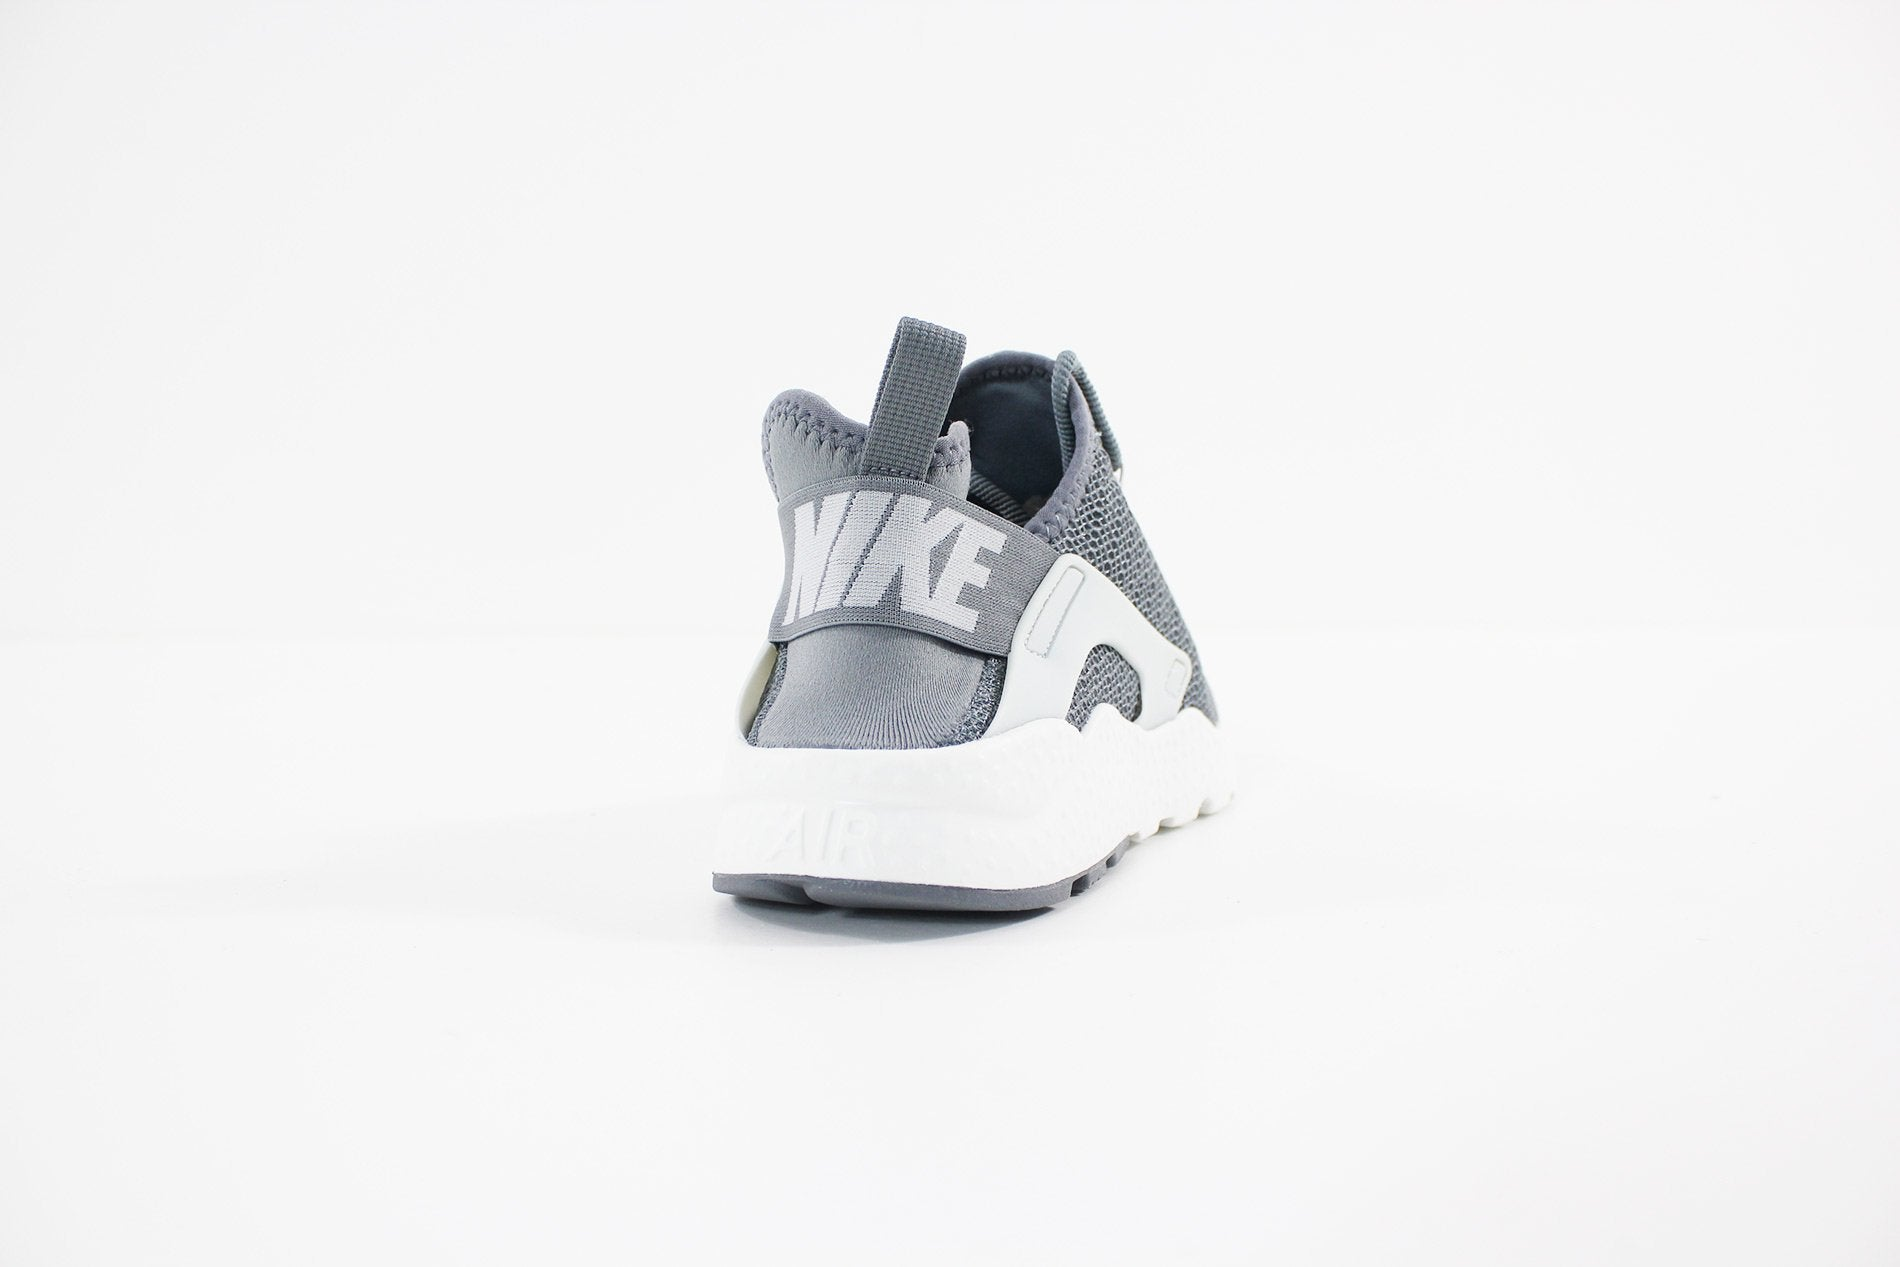 Nike - Air Huarache Run Ultra (COOL GREY/PURE PLATINUM-SUMMIT WHITE) 819151-012